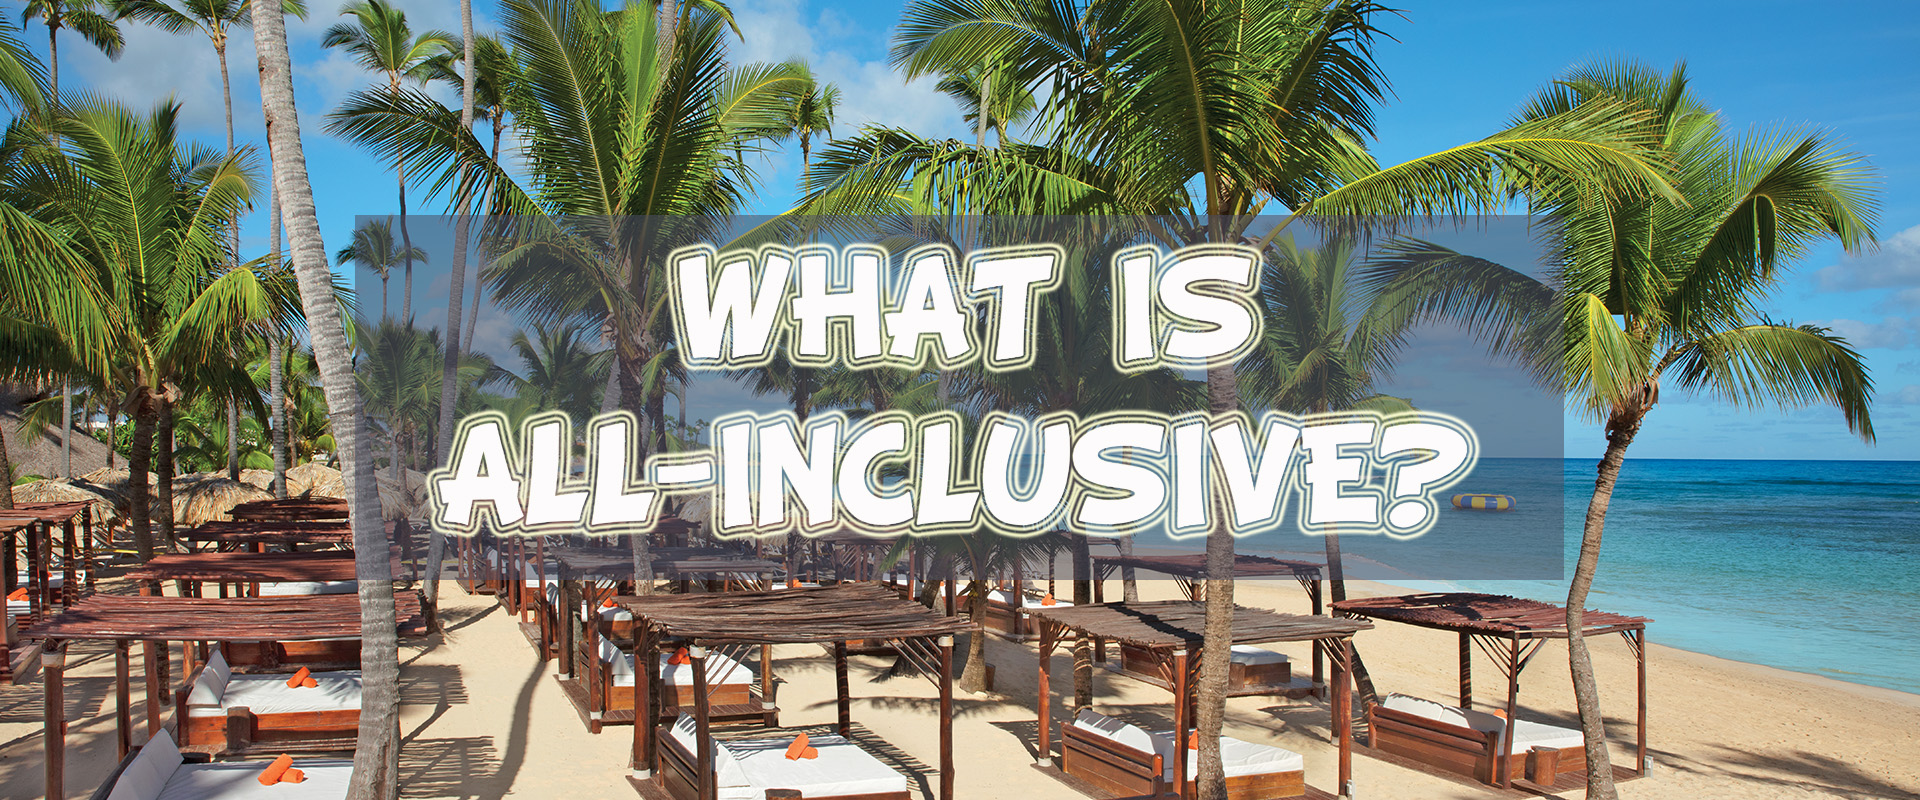 What-All-Inclusive